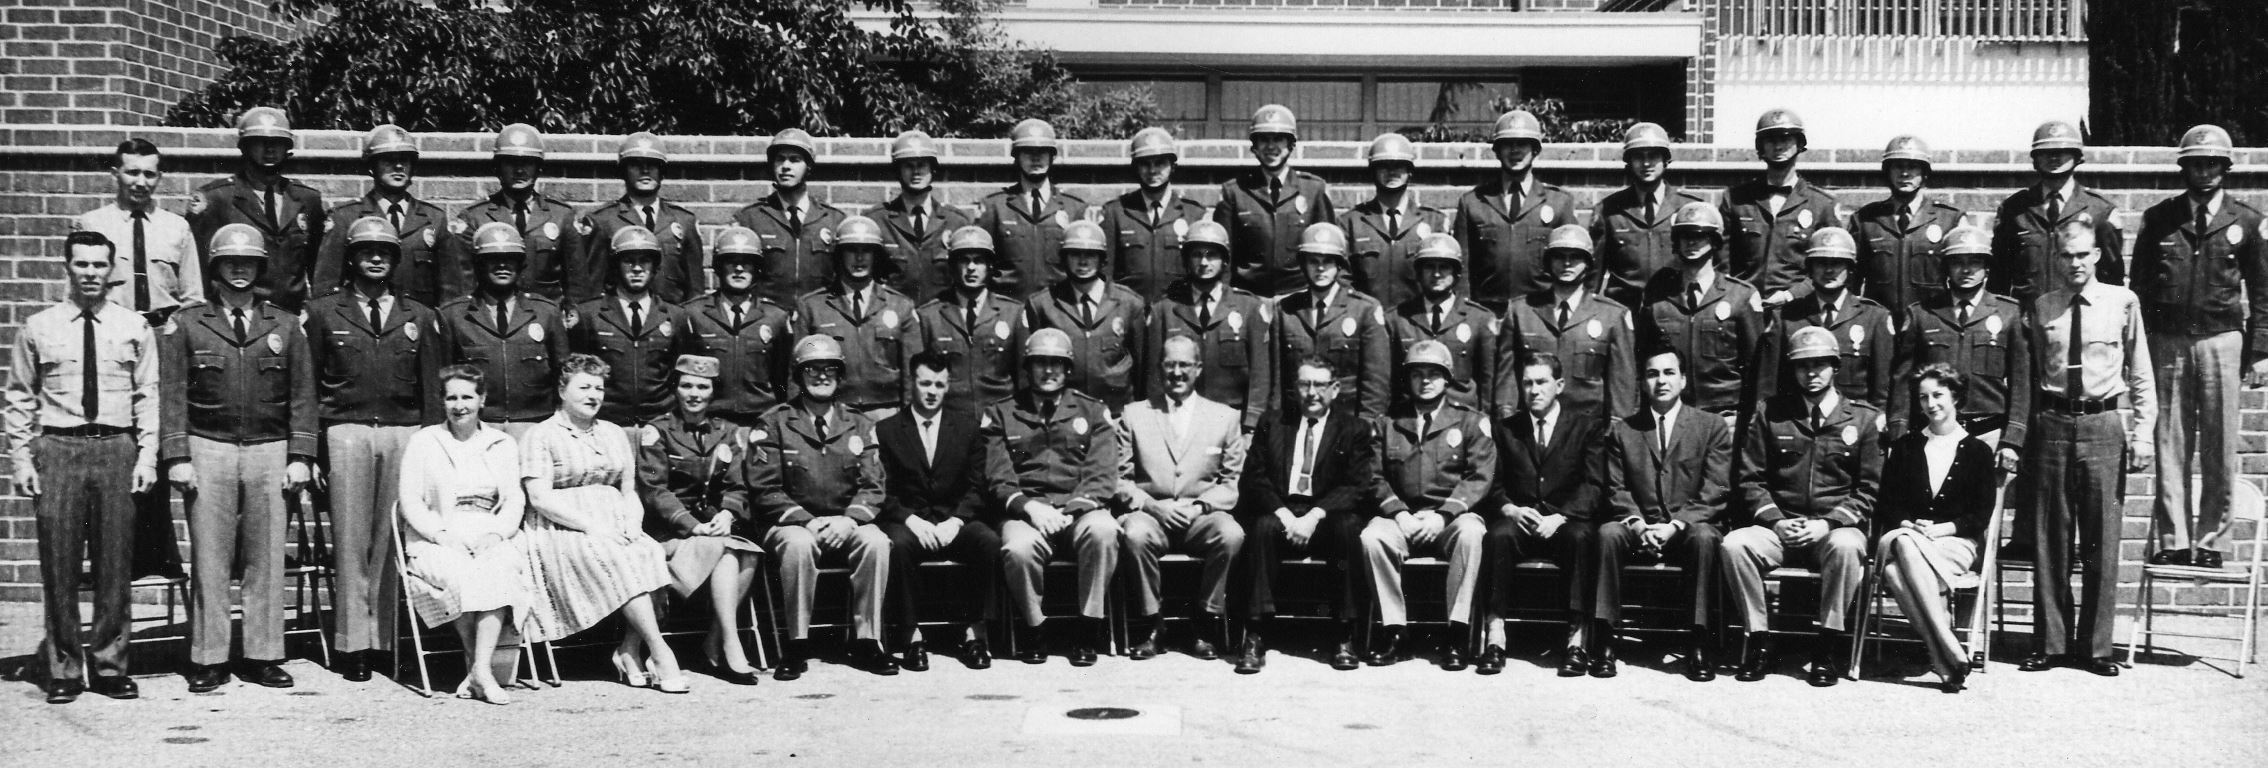 Historical Photo of the El Monte Police Department